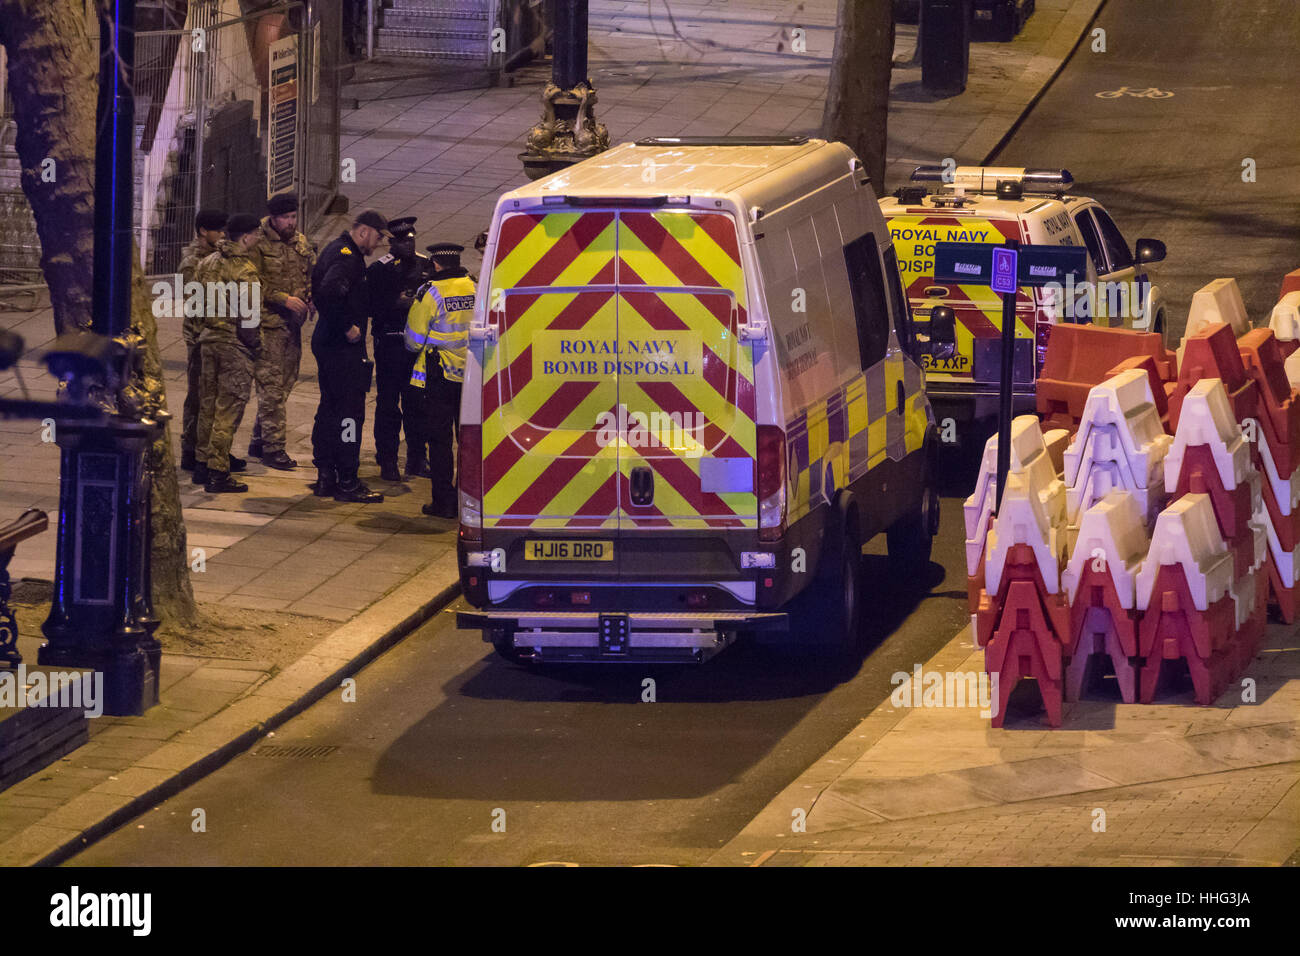 London, UK. 19th Jan, 2017. Bomb disposal experts from the Royal Navy arrive at Victoria Embankment to defuse and - Stock Image